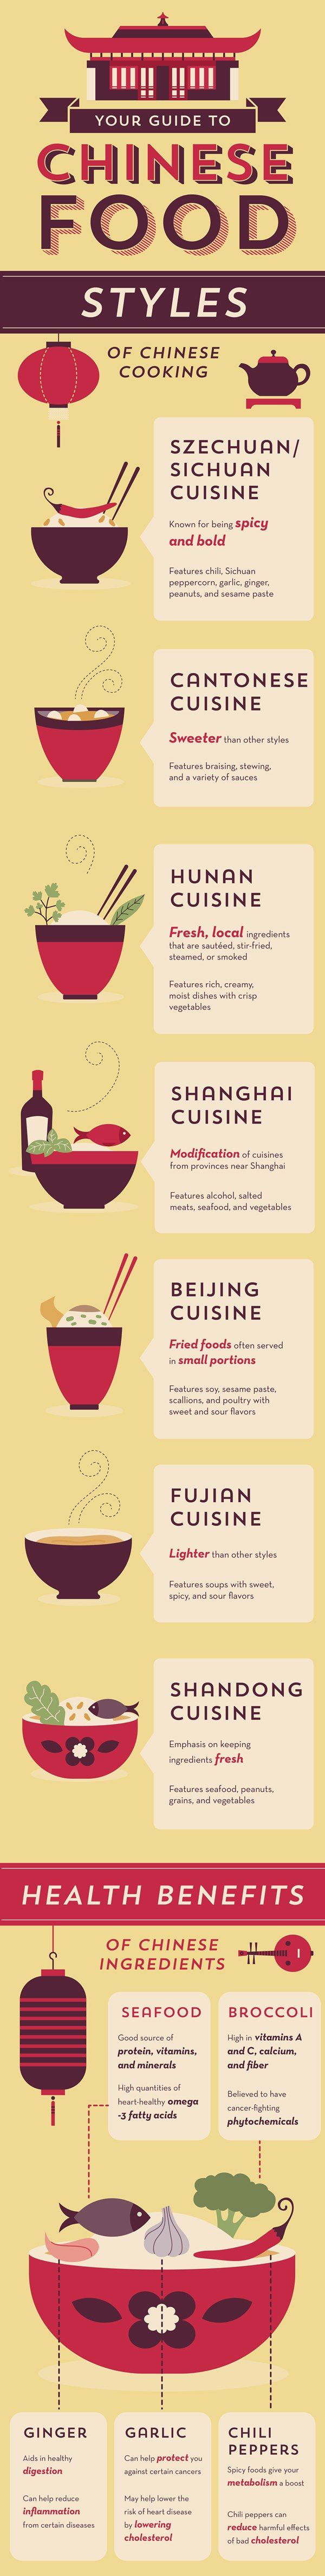 Love #Chinese cuisine? Here's your all in one guide! #Infographic http://w3food.com/ppost/227713324887145346/